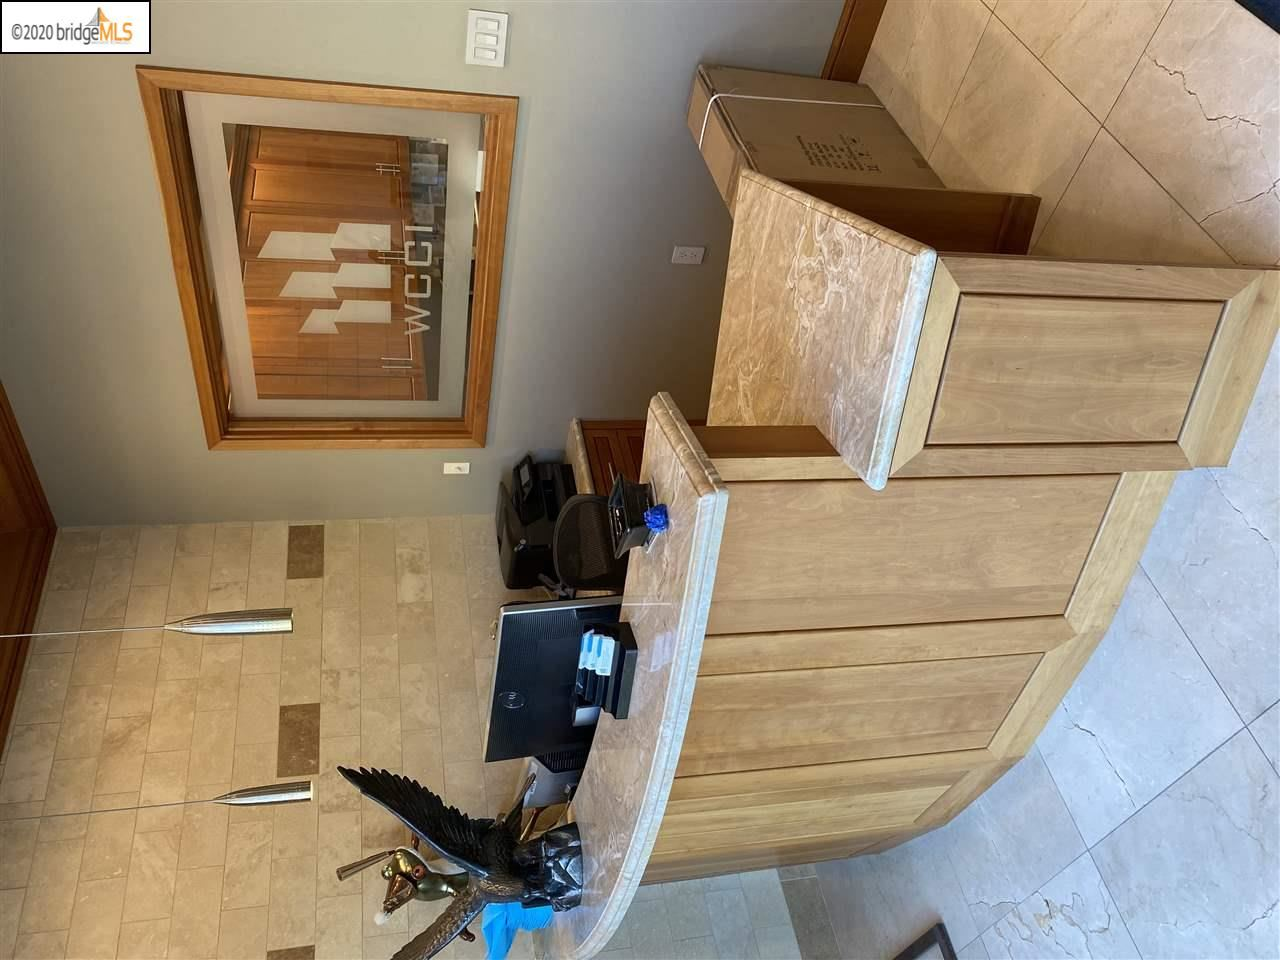 Photo of 9020 Brentwood Blvd Suite B, BRENTWOOD, CA 94513 (MLS # 40932512)